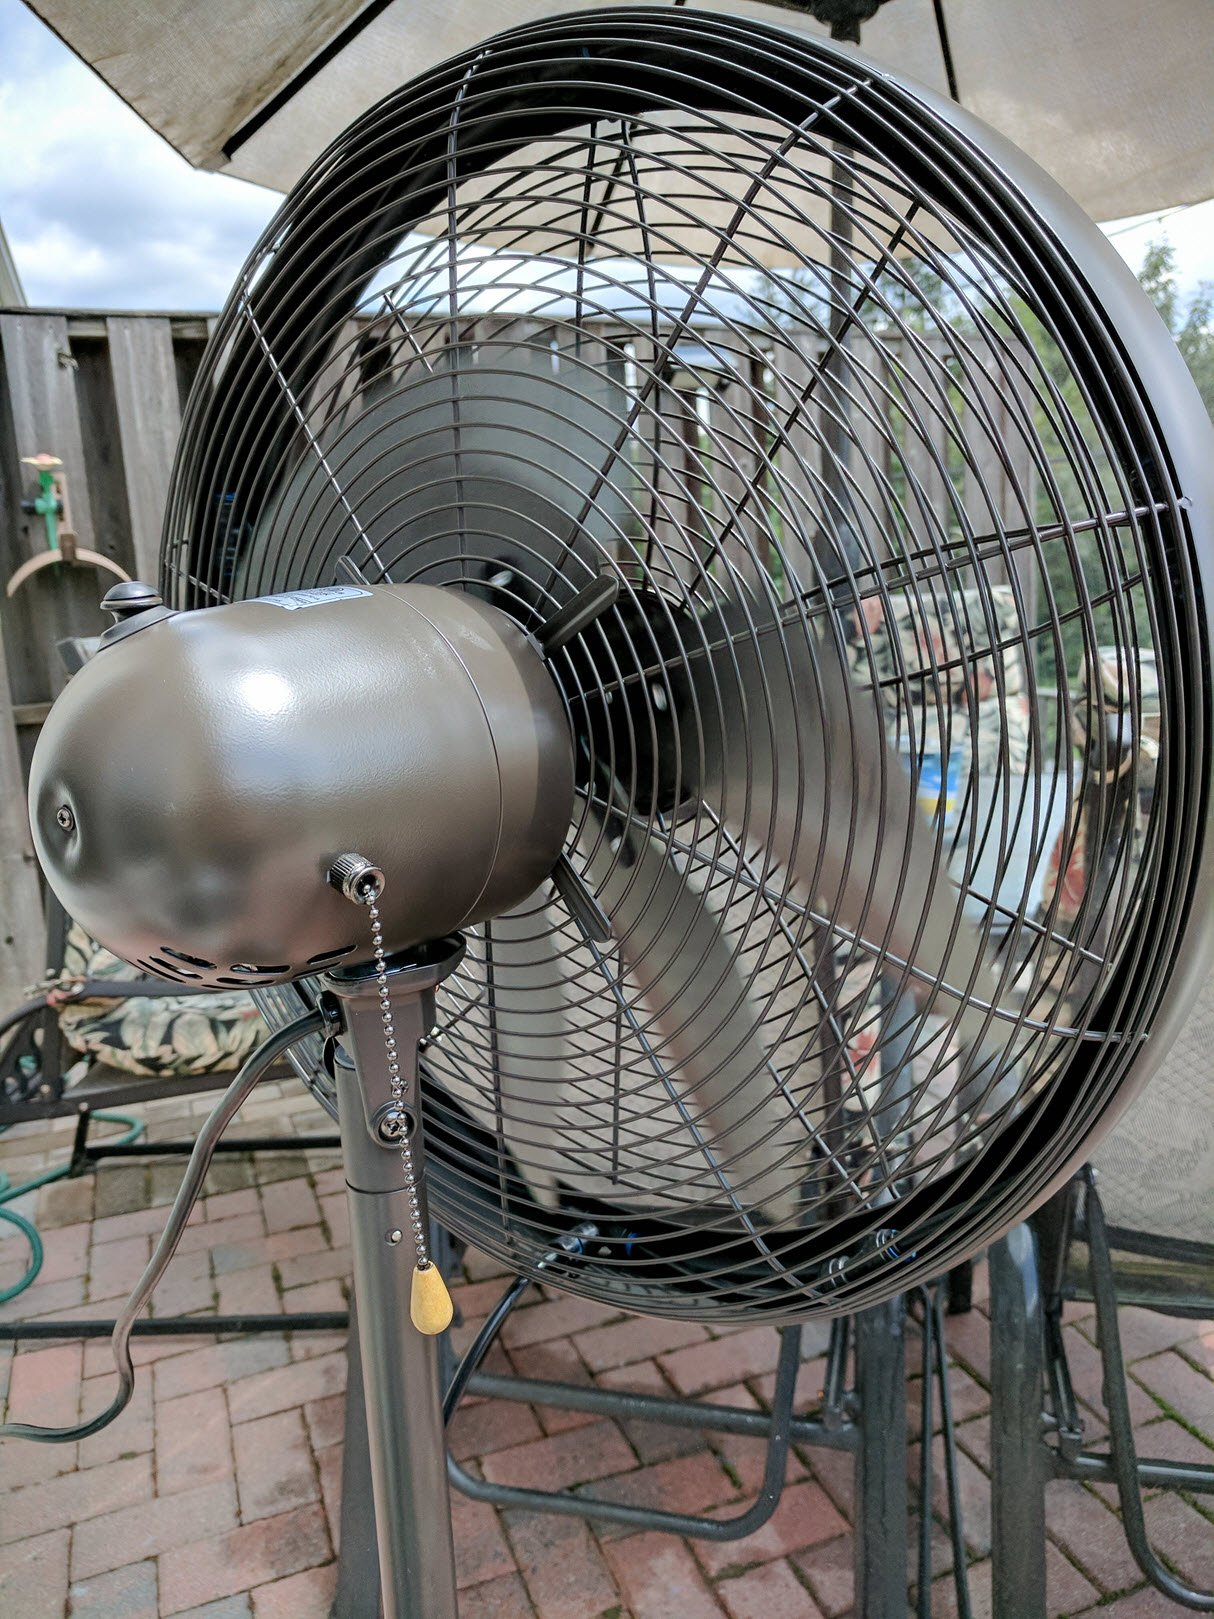 Cool Water Misting Fans : Stay cool outdoors with the newair outdoor misting fan